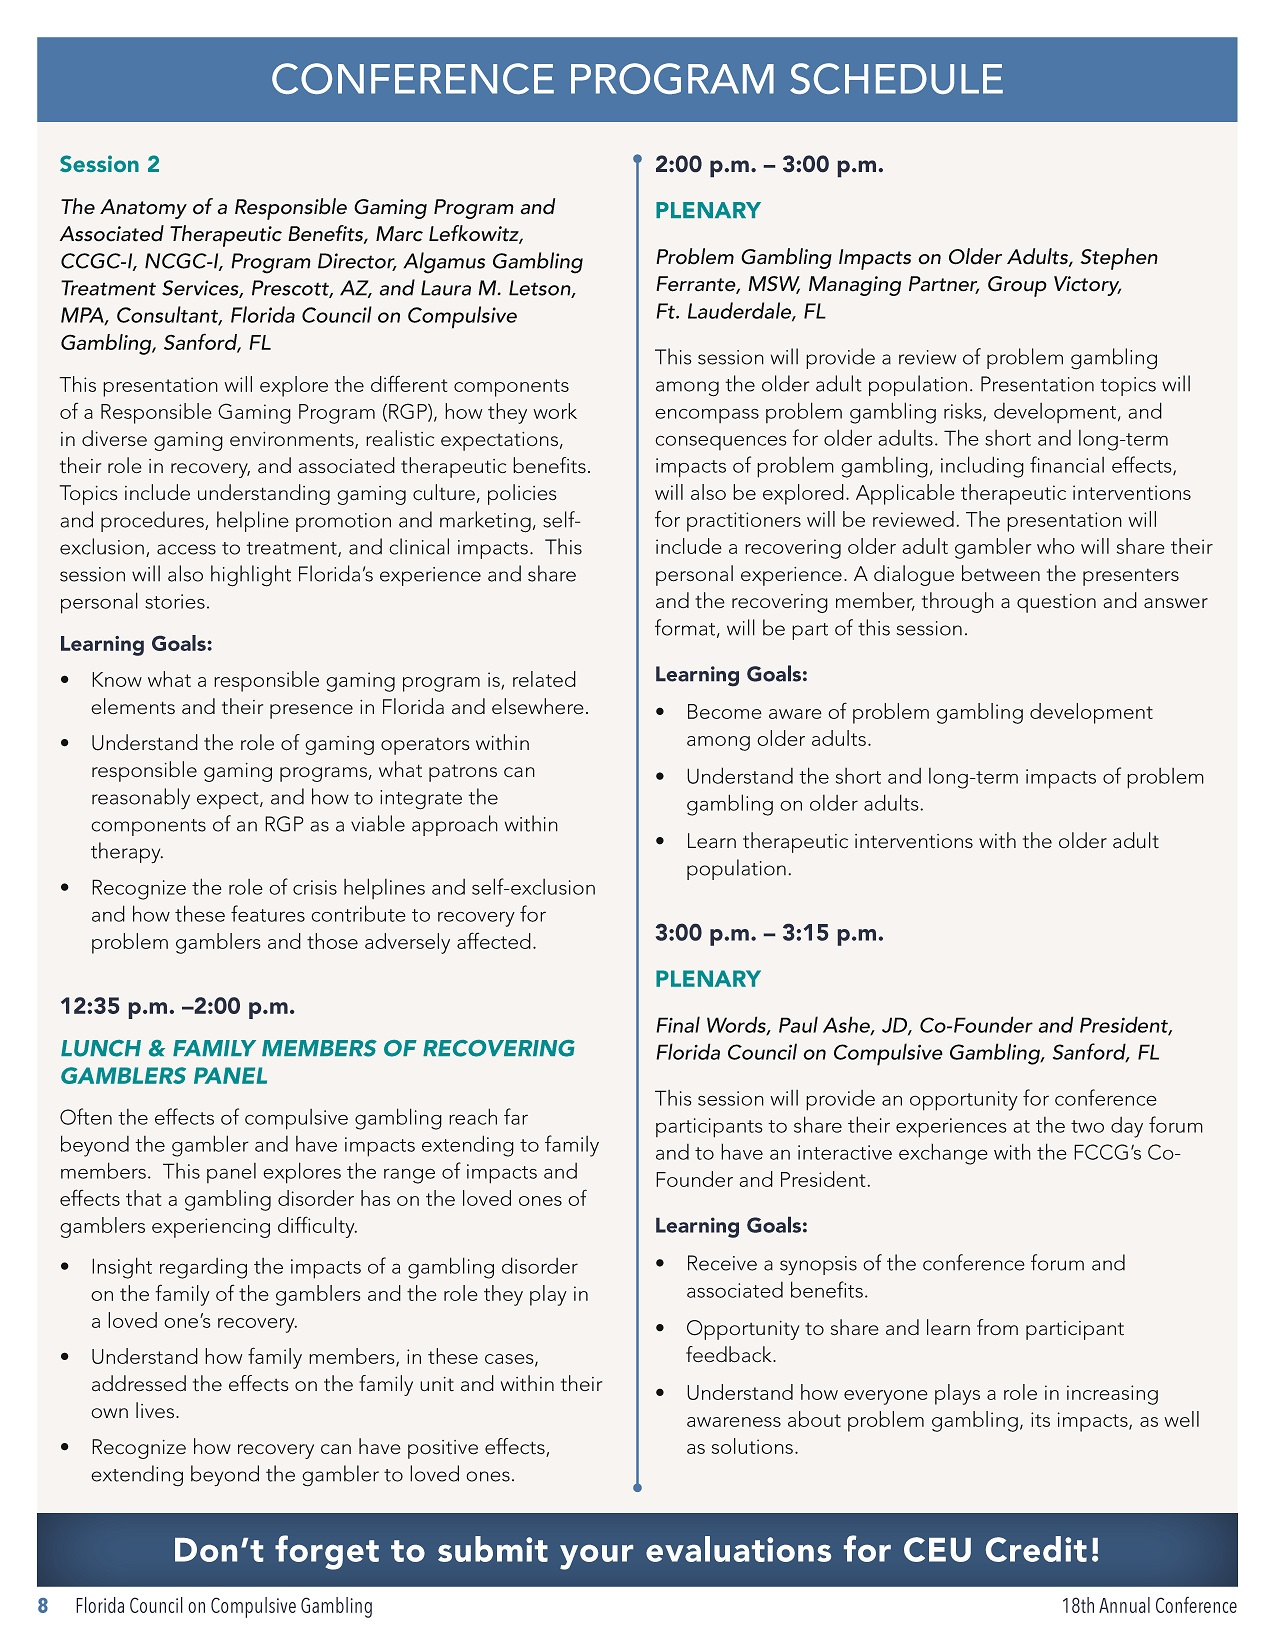 18th Annual Conference Program Schedule_Page_6